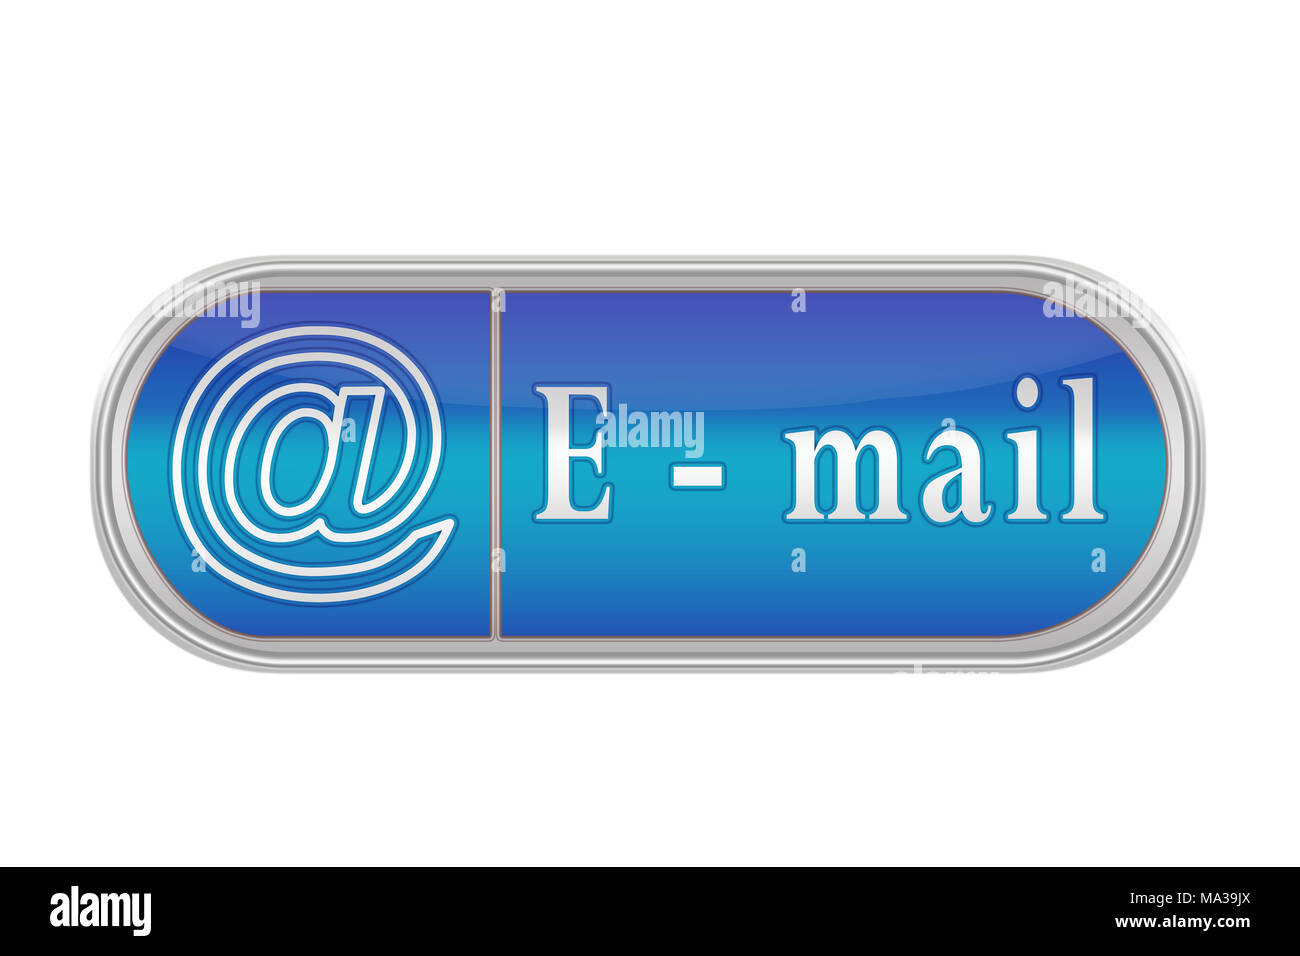 Oblong volume button of blue color with the icon and the inscription 'E-mail', white background - Stock Image